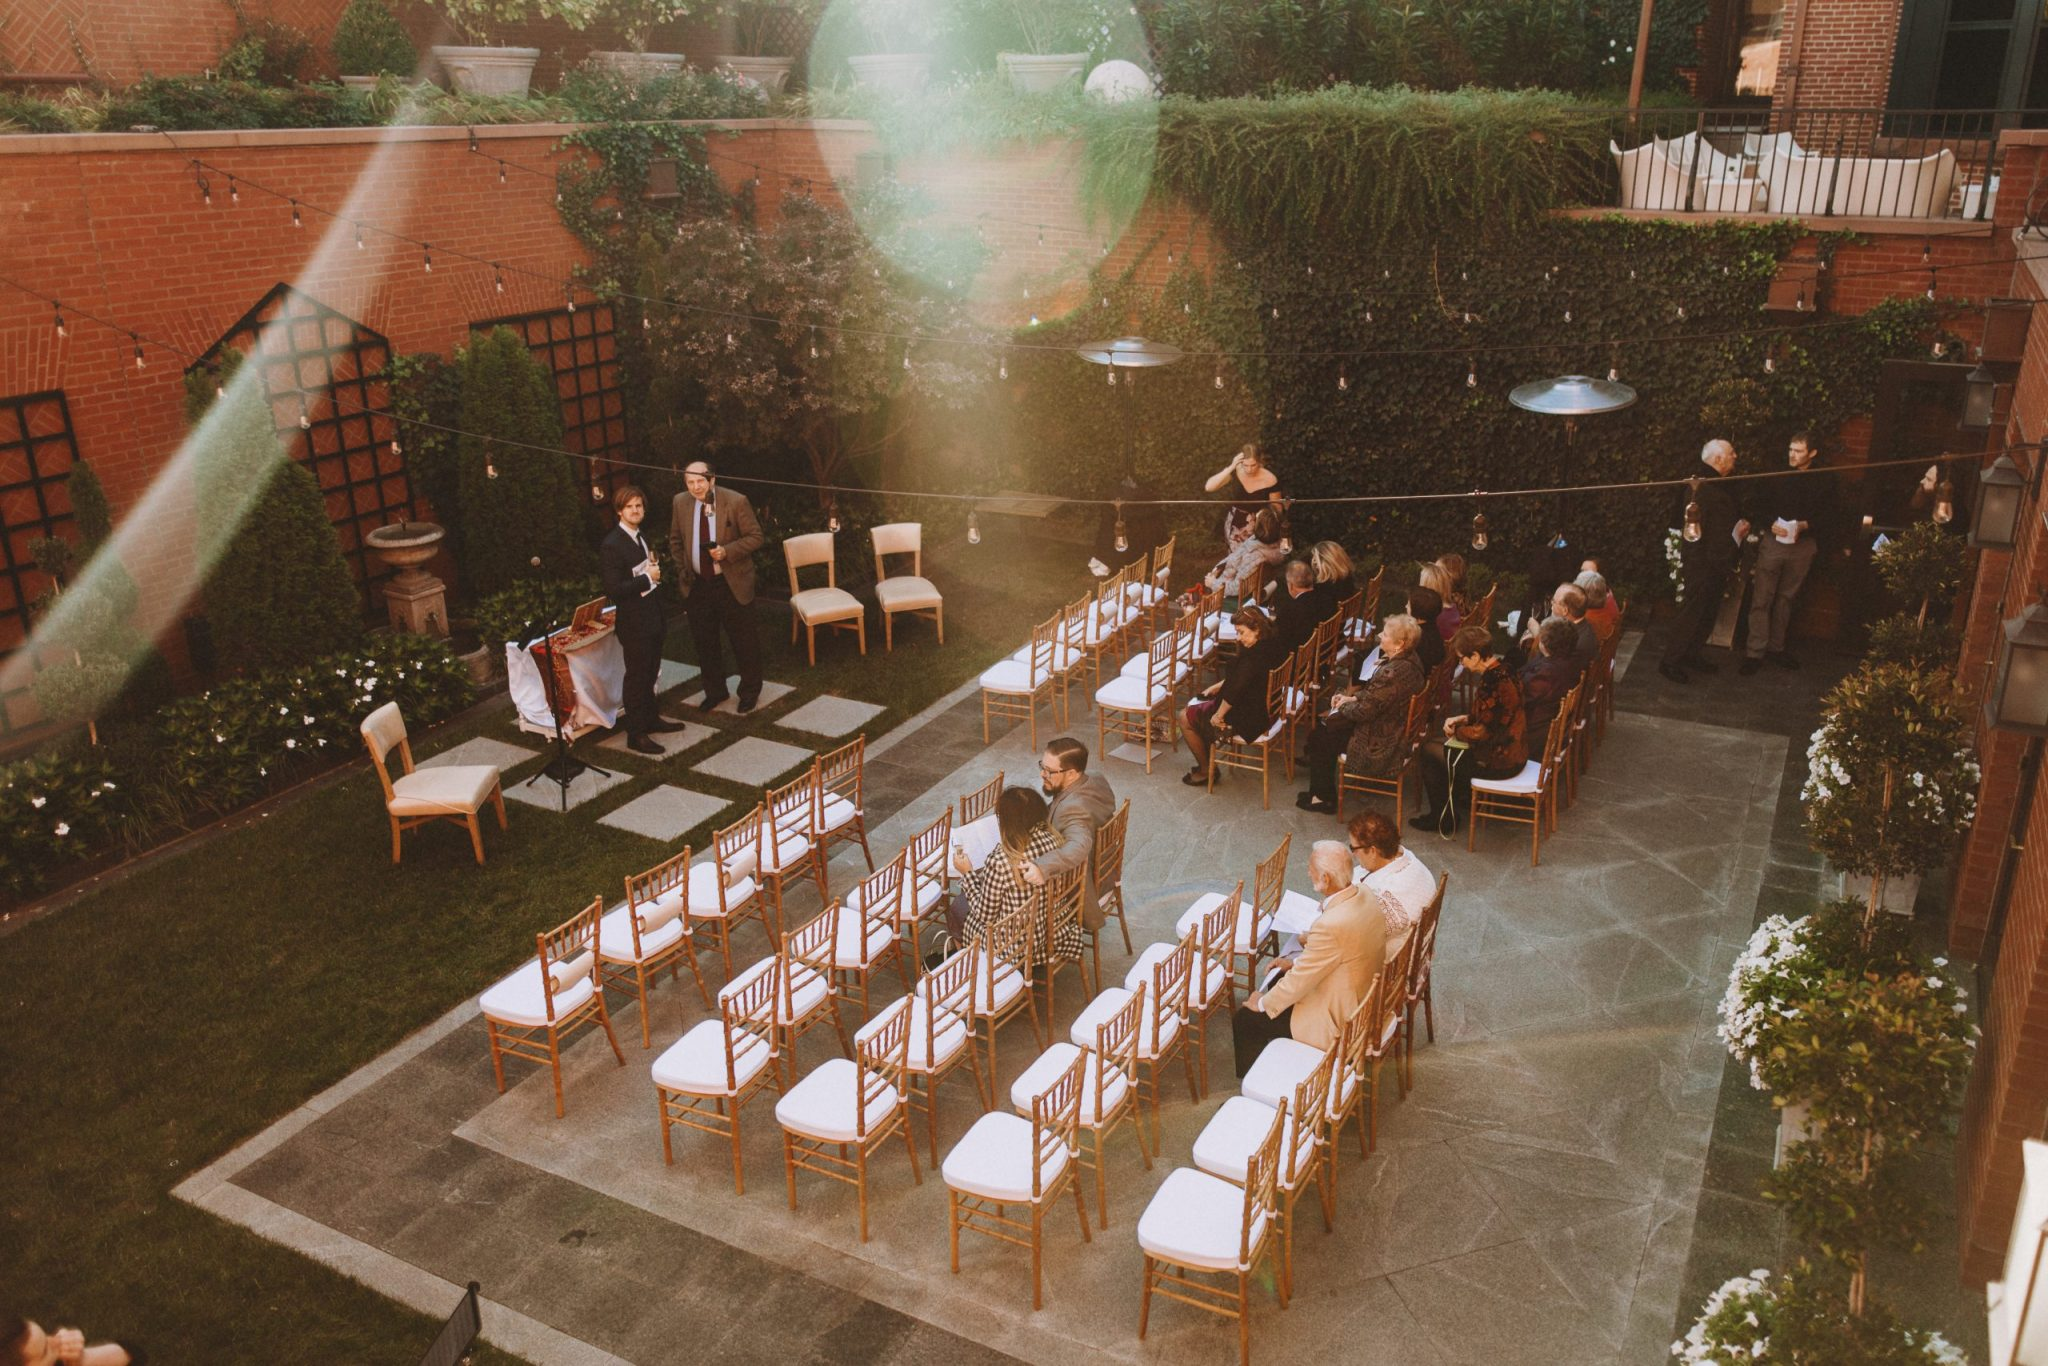 Overlooking the courtyard with guests mingling